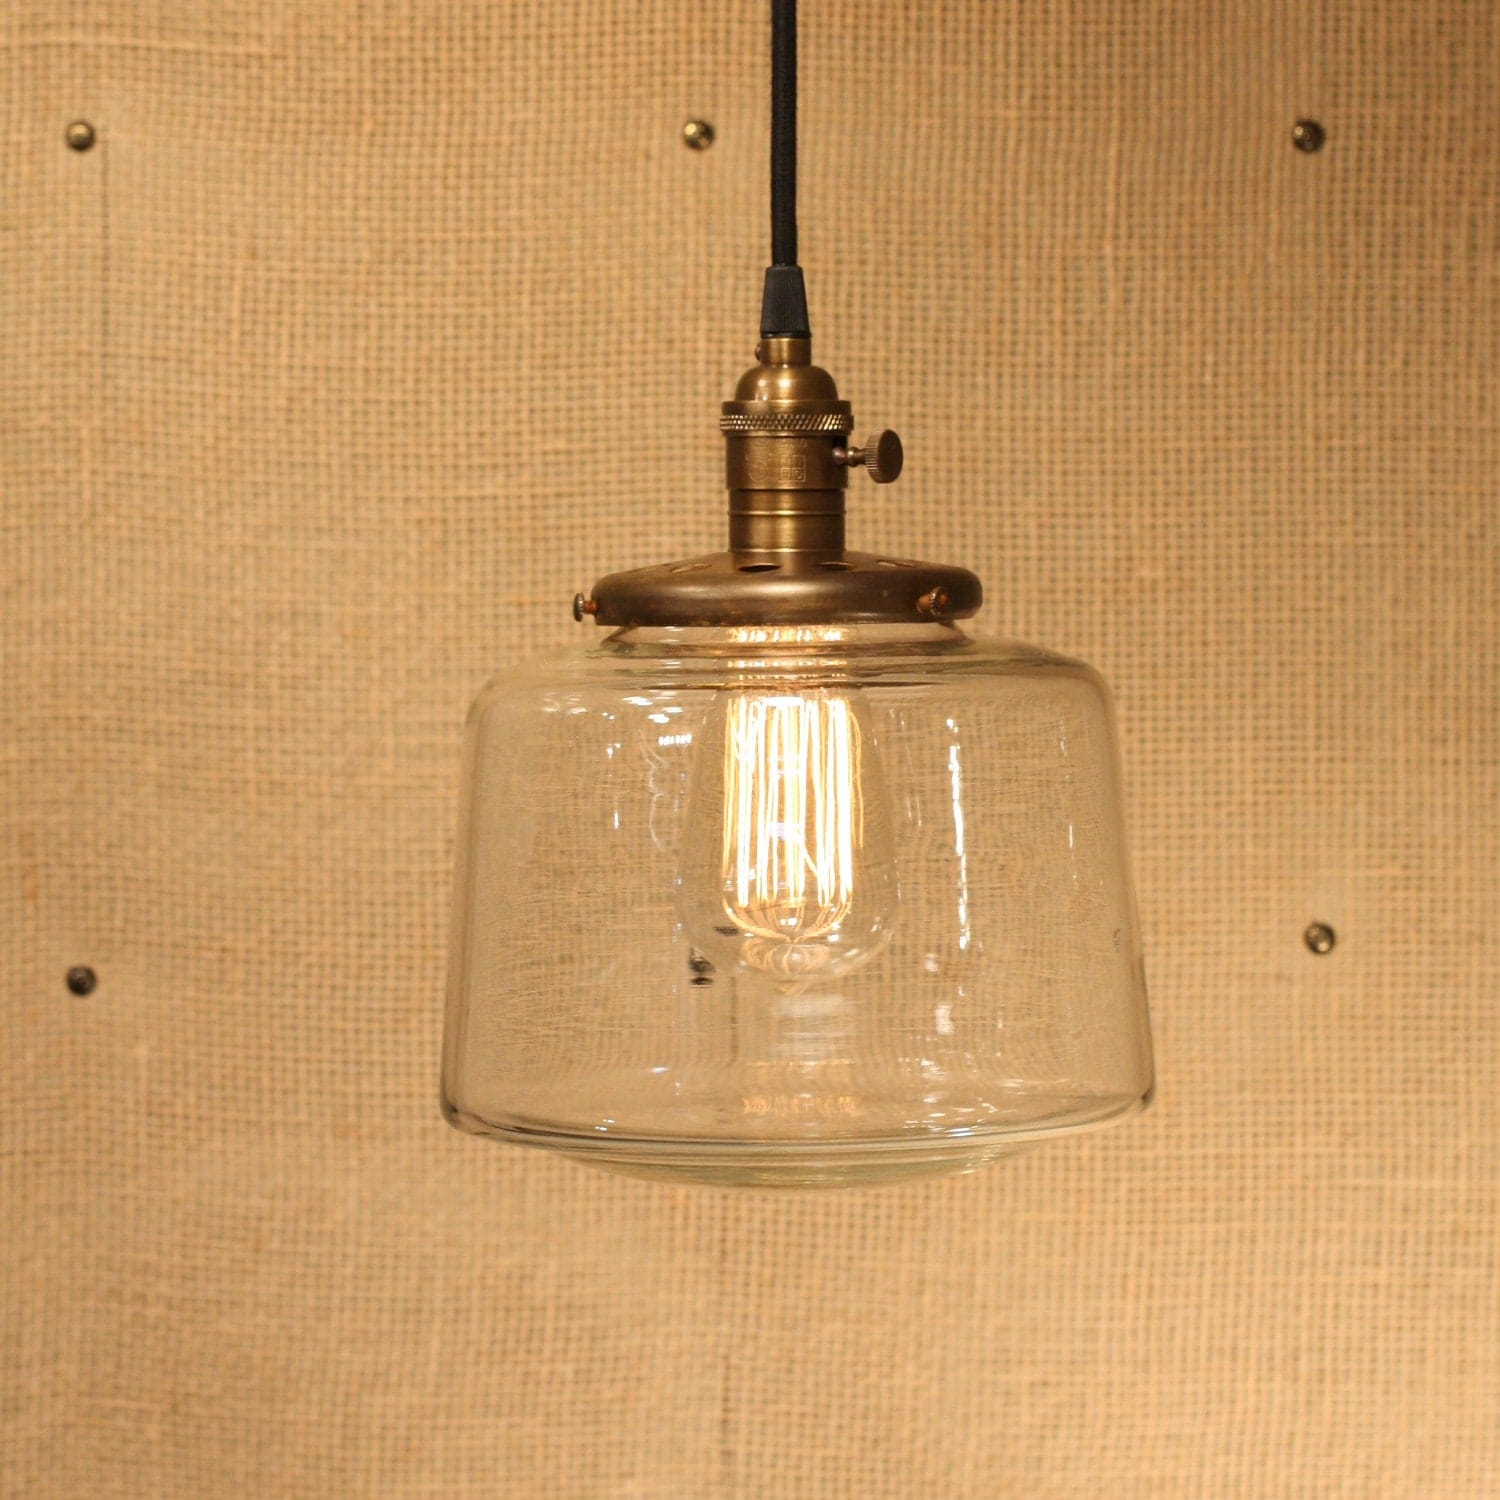 Pendant Lighting With Tapered Clear Glass Shade and Exposed Socket Design - lucentlampworks